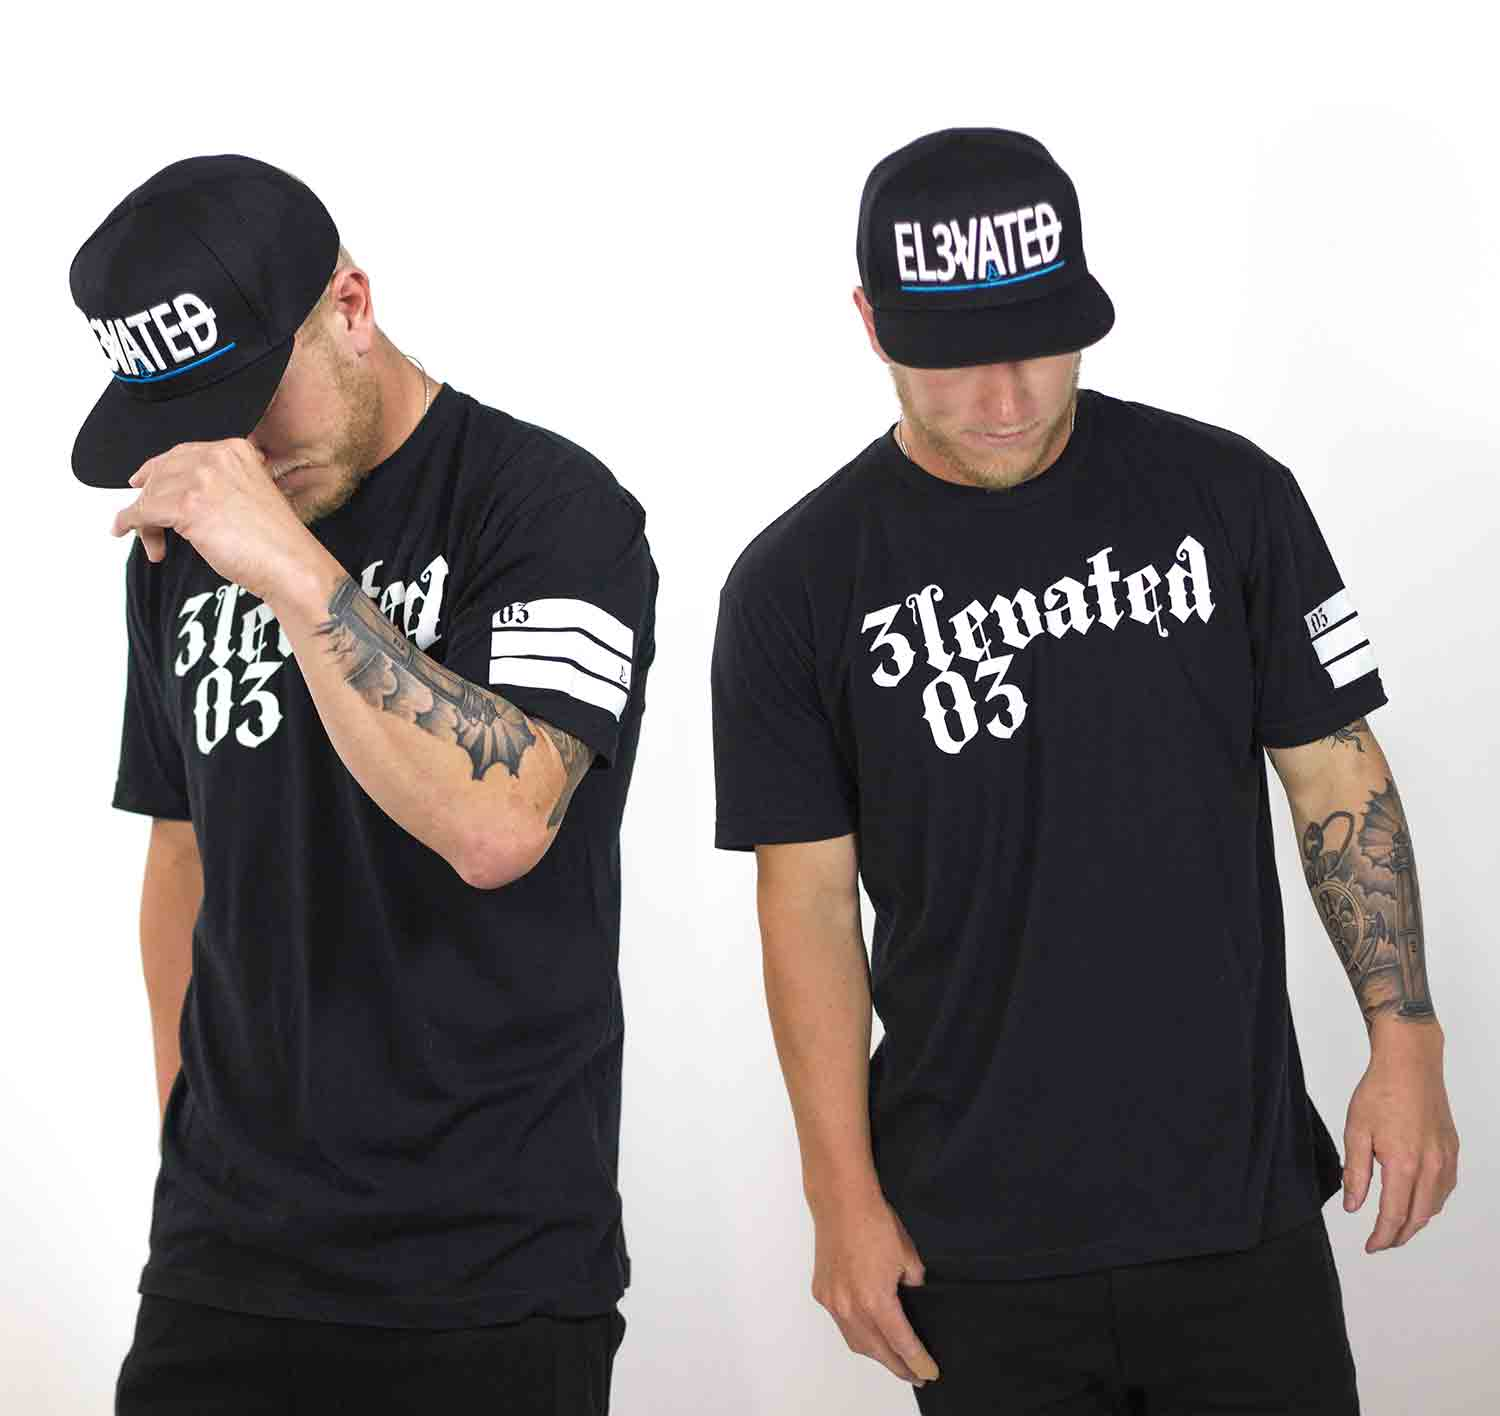 Elevated clothing los angeles streetwear brand 03 LA tee